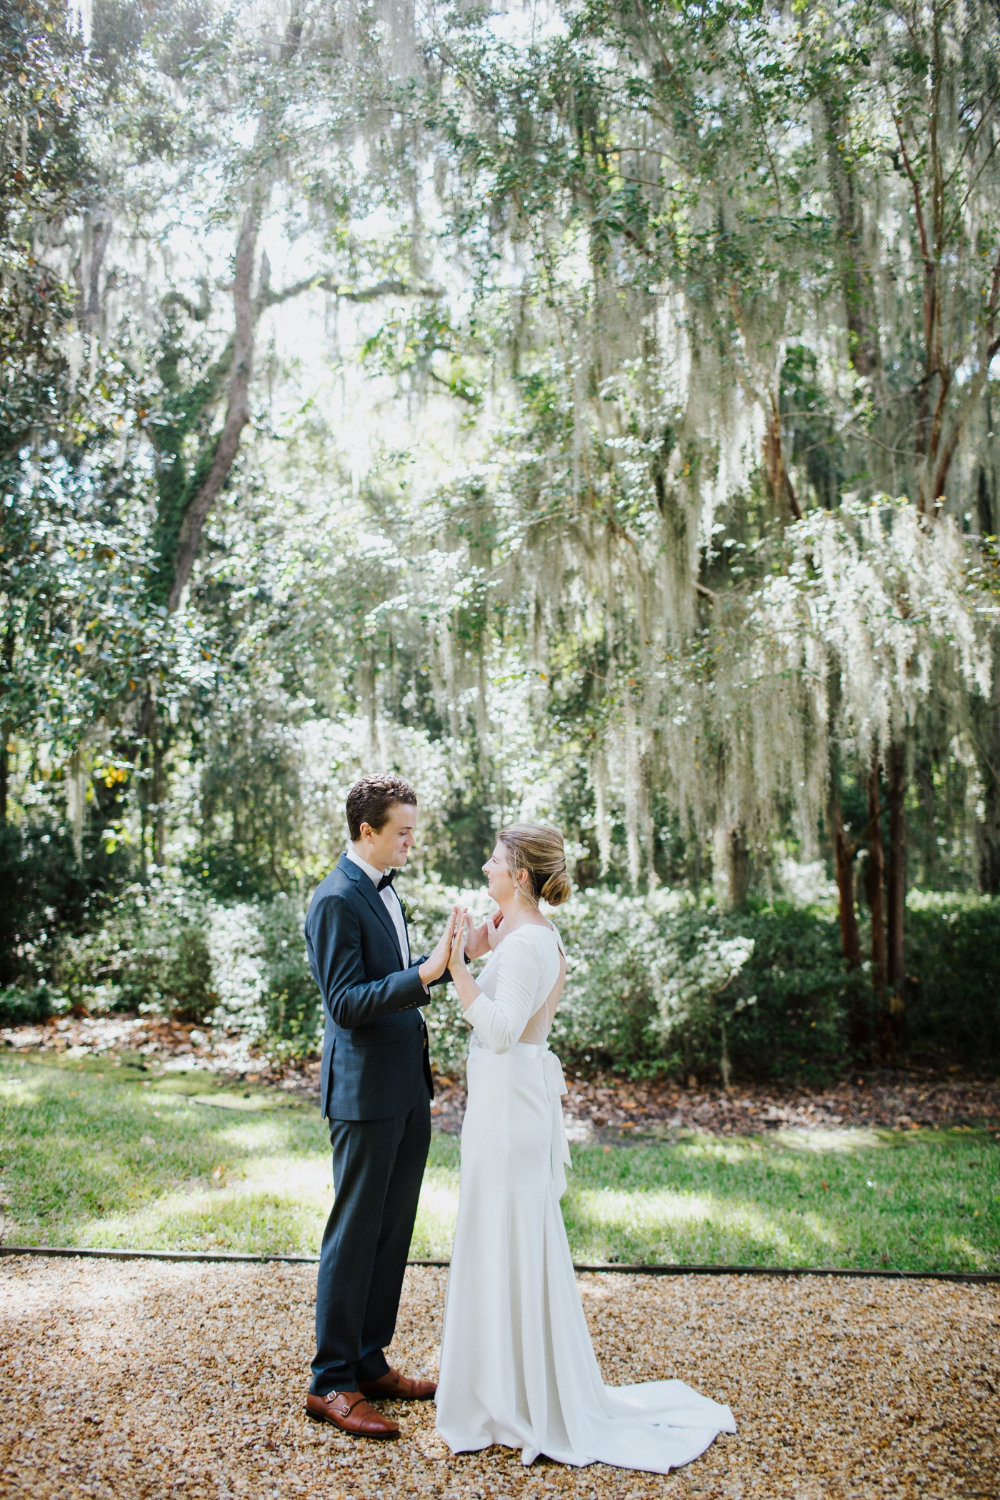 Emma Hurst Saint Simons Wedding At Christ Church Frederica Izzy Co Photography